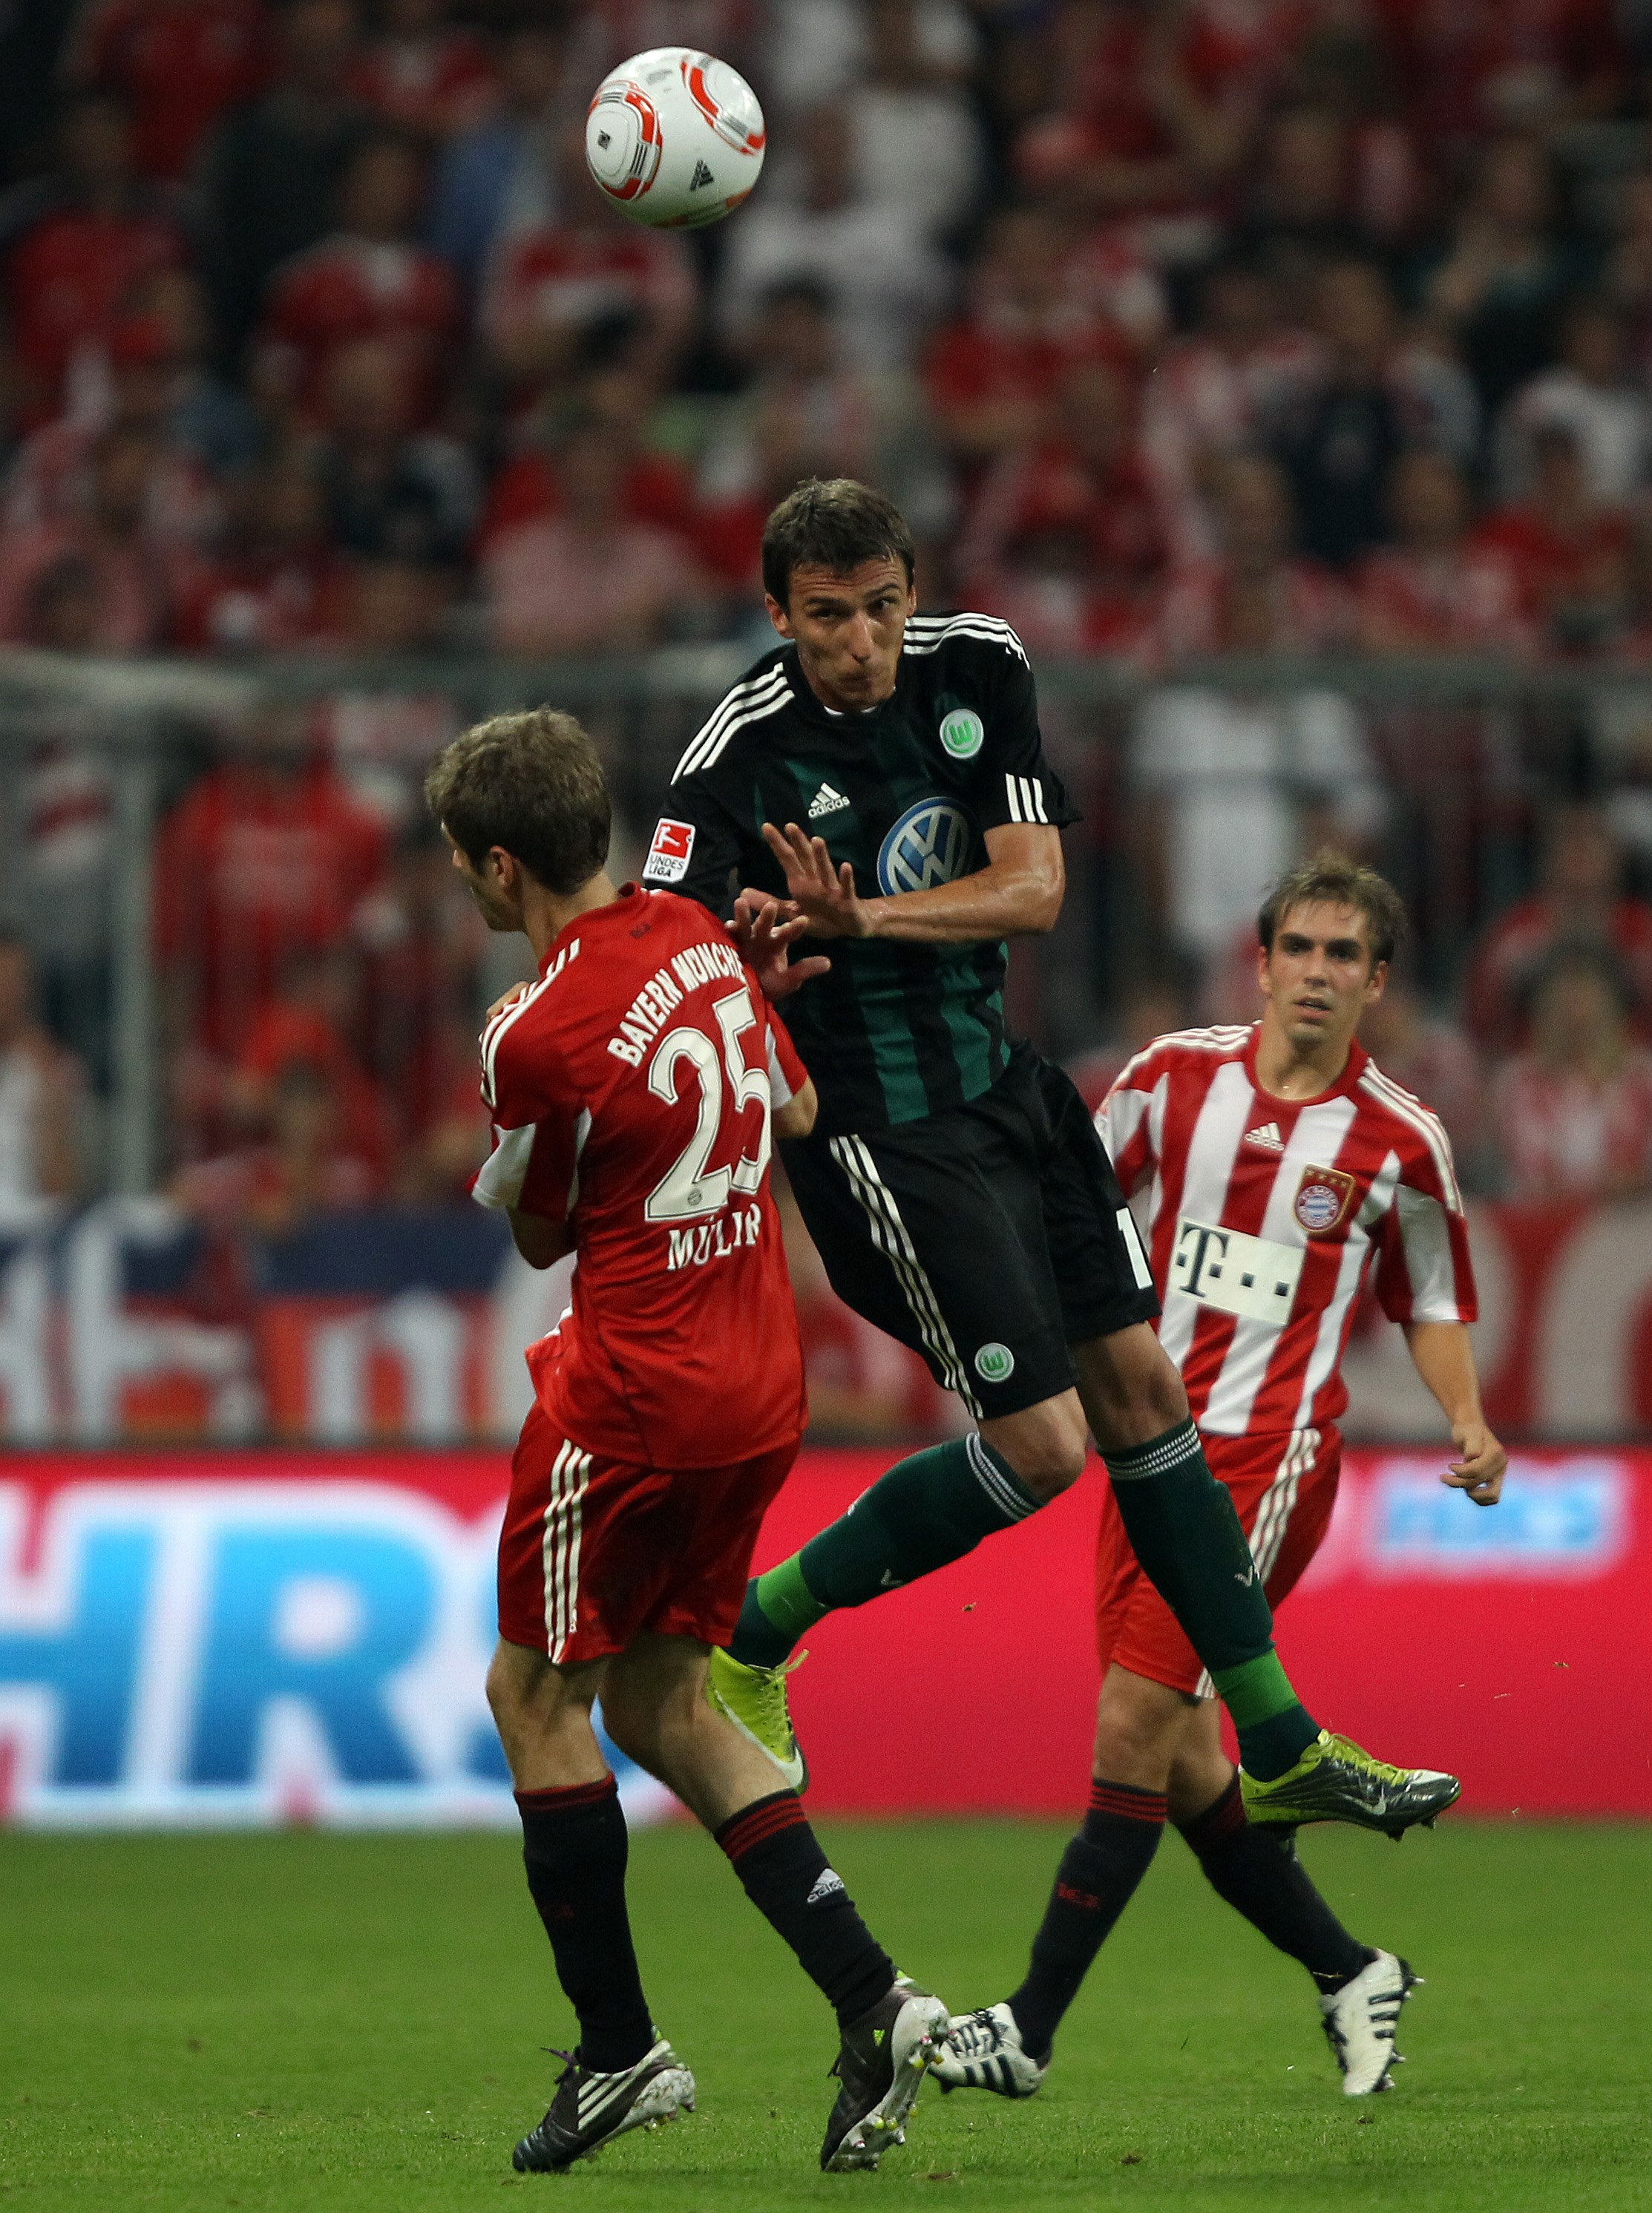 MUNICH, GERMANY - AUGUST 20: Mario Mandzukic of Wolfsburg jumps for a header during the Bundesliga match between FC Bayern Muenchen and VfL Wolfsburg at Allianz Arena on August 20, 2010 in Munich, Germany.  (Photo by Clive Brunskill/Getty Images)